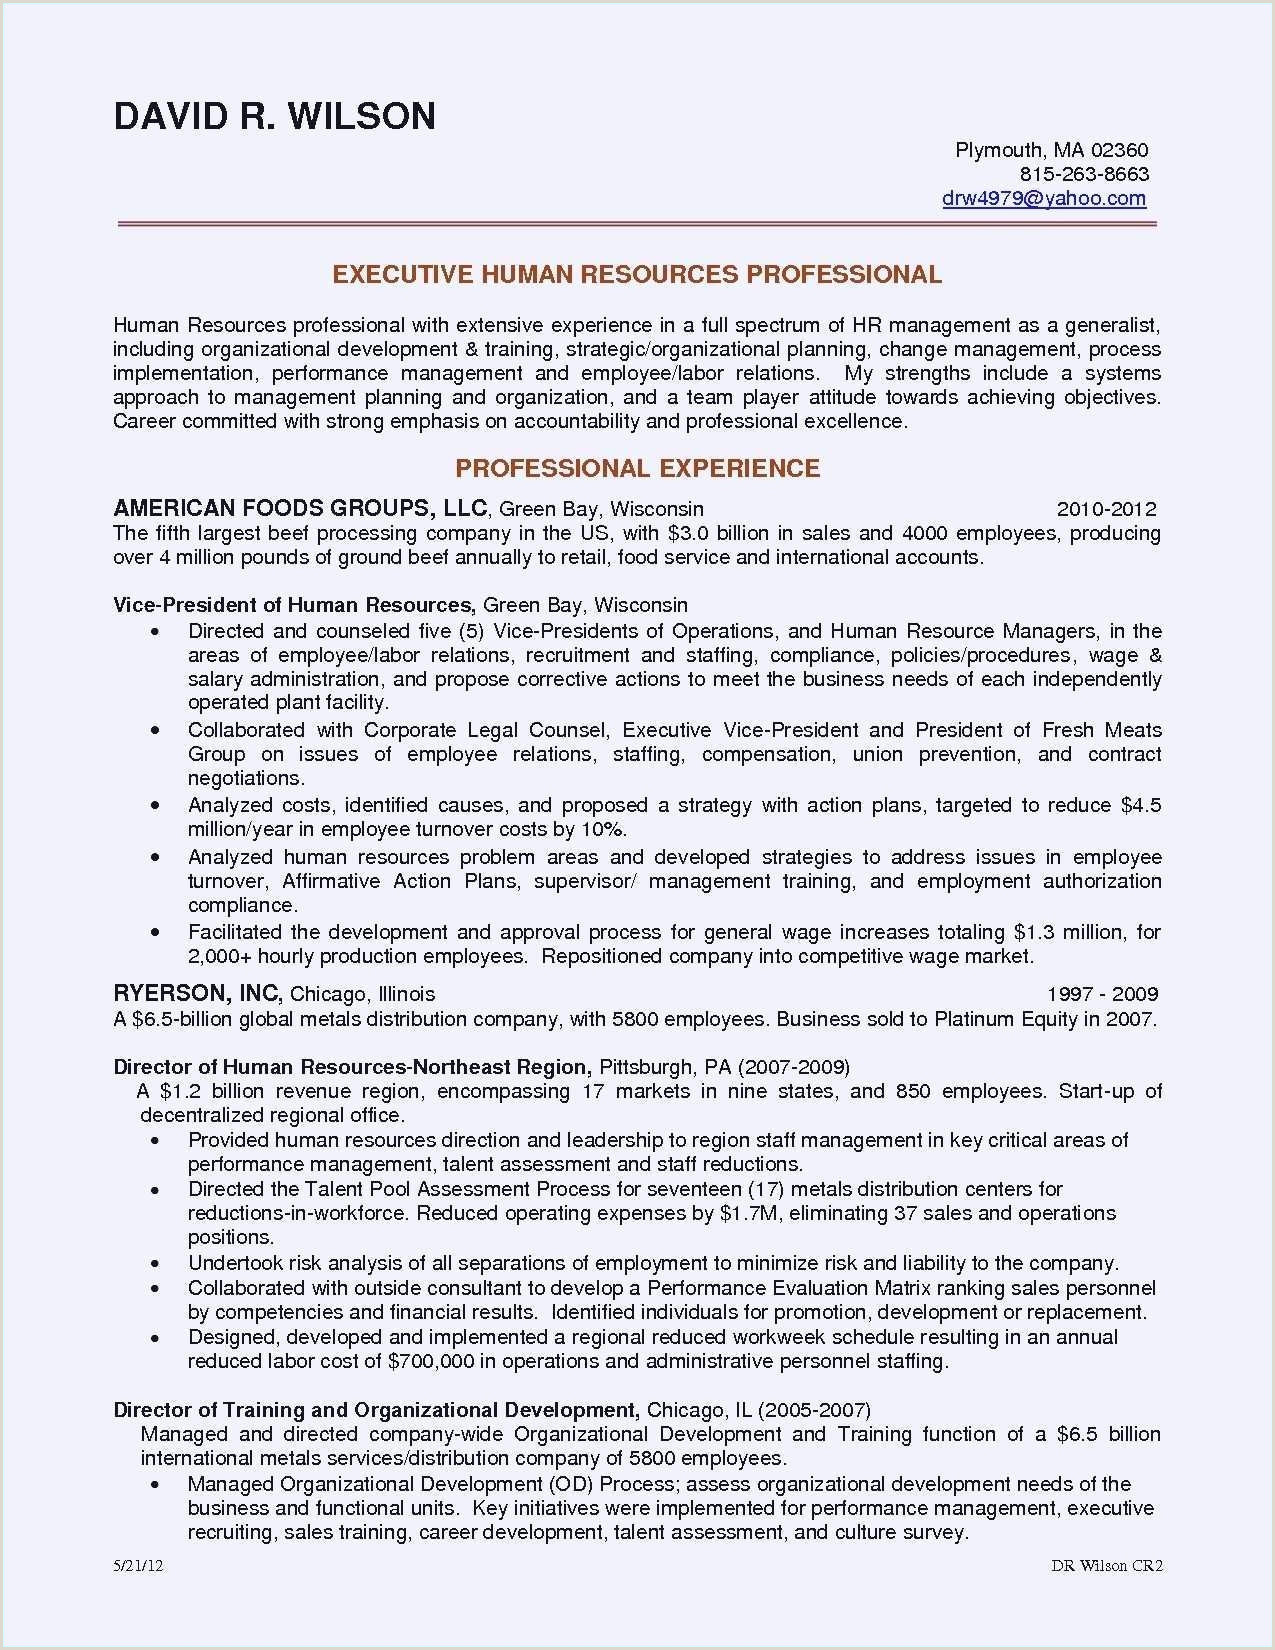 Resume for Construction Superintendent Piping Construction Supervisor Resume – Salumguilher